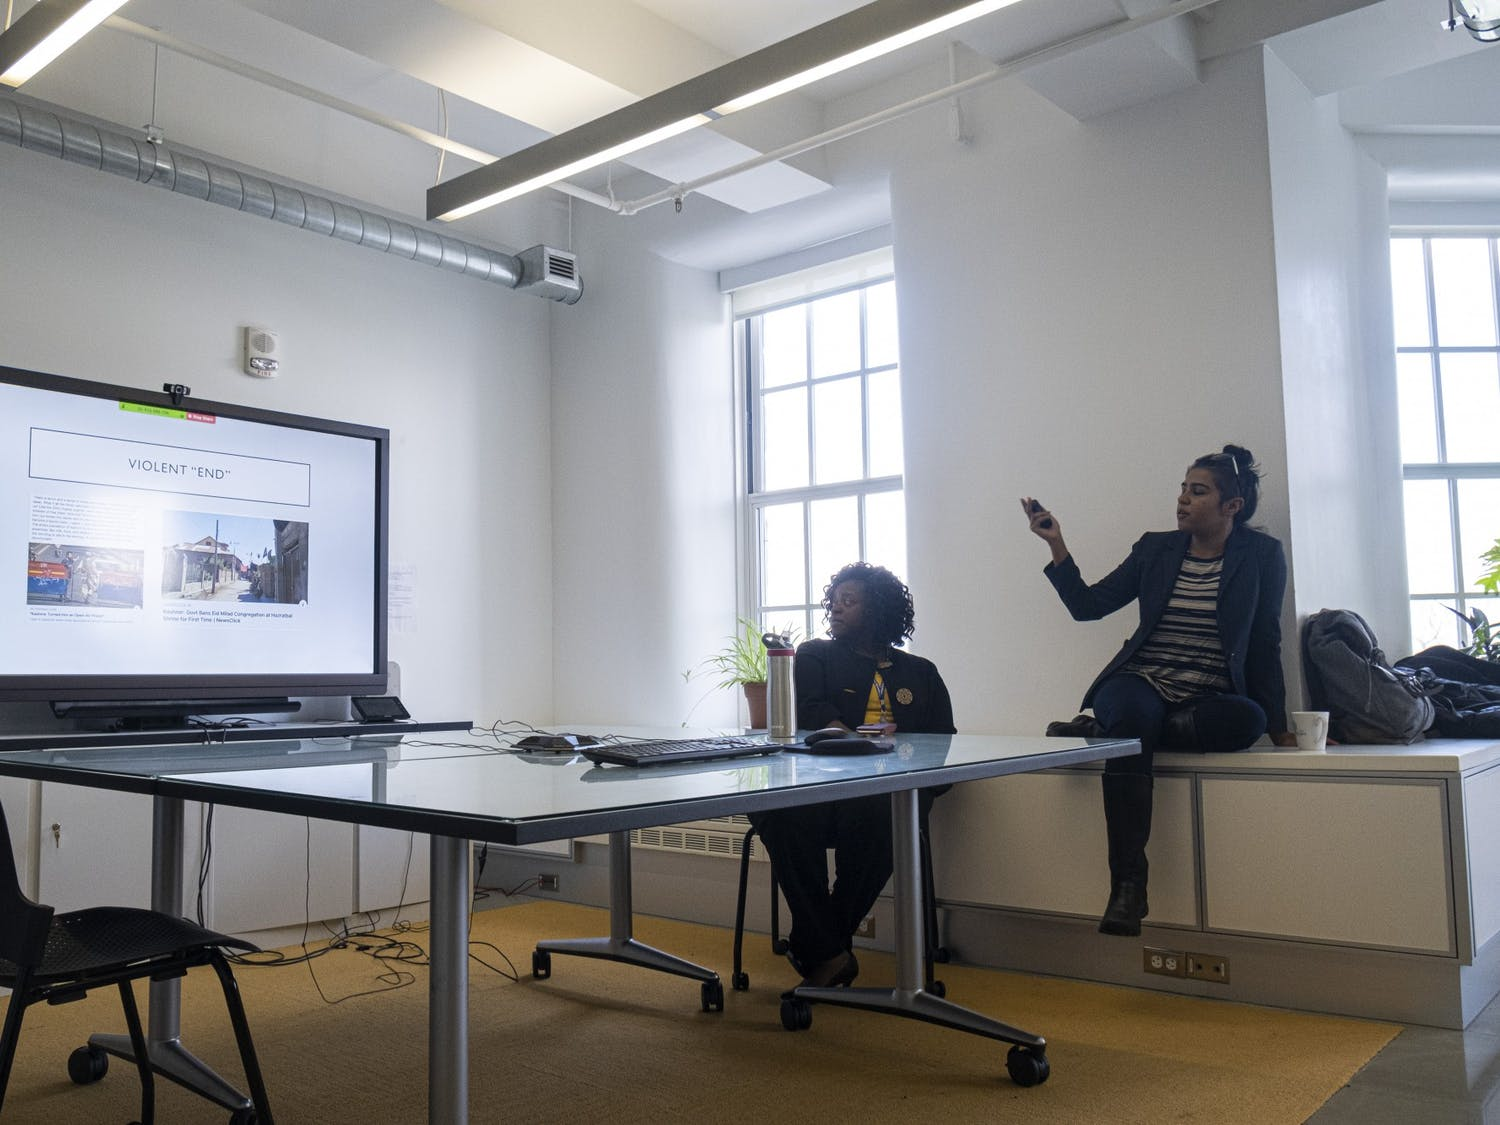 Kafuli Agbemenu (left) and Shaanta Murshid (right) present two different yet connected perspectives on women's health during a Global Health Equity Brown Bag Seminar.